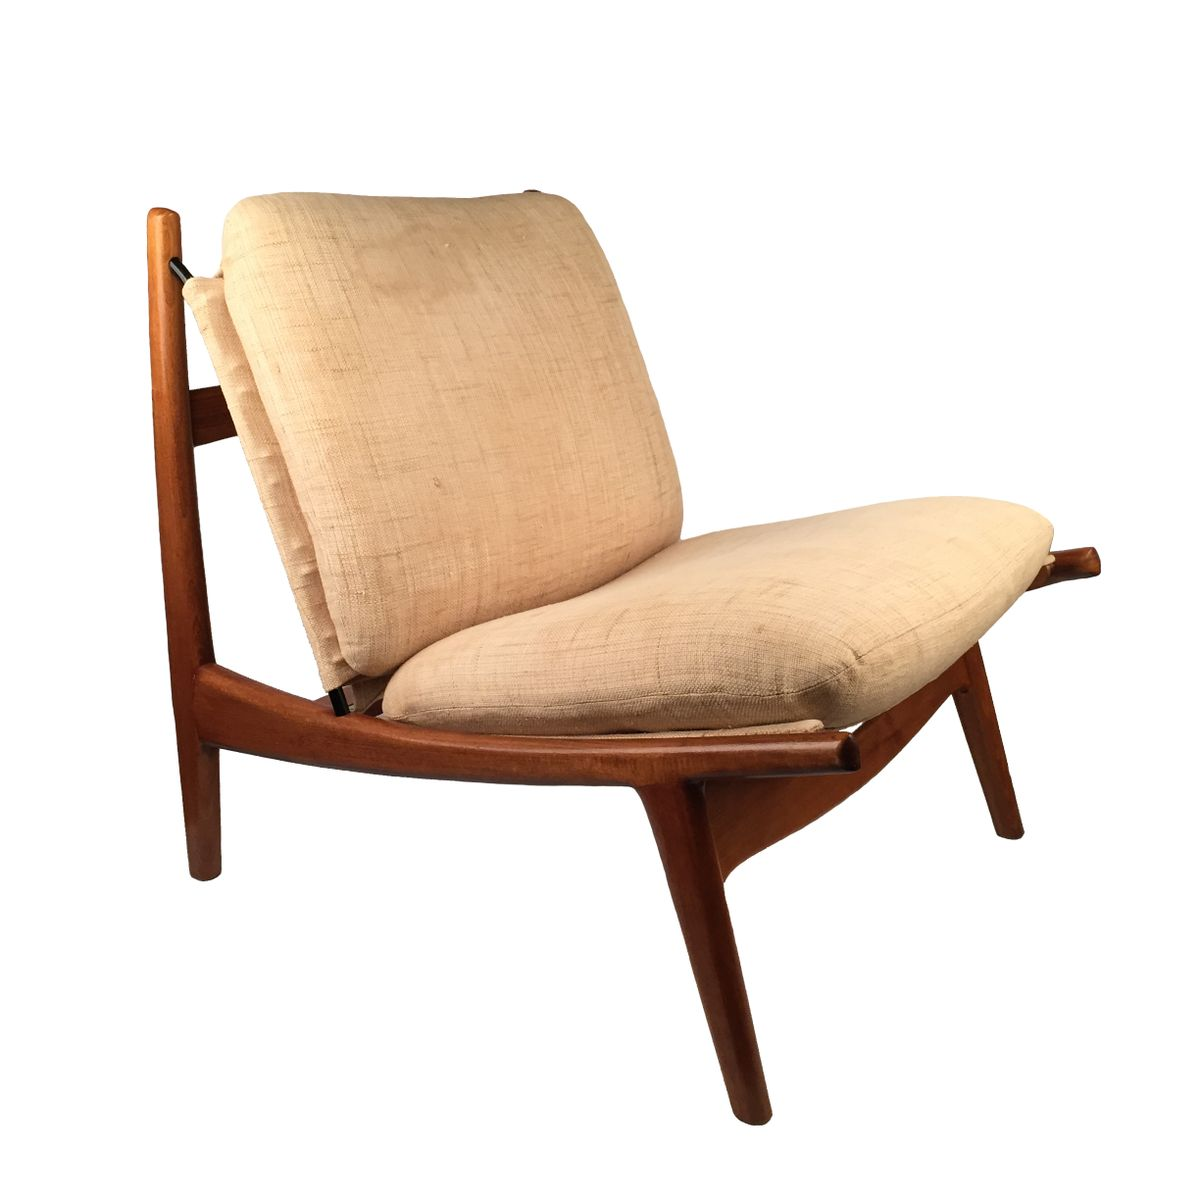 Fauteuils Steiner Vintage Vintage Lounge Chair By Joseph André Motte For Steiner